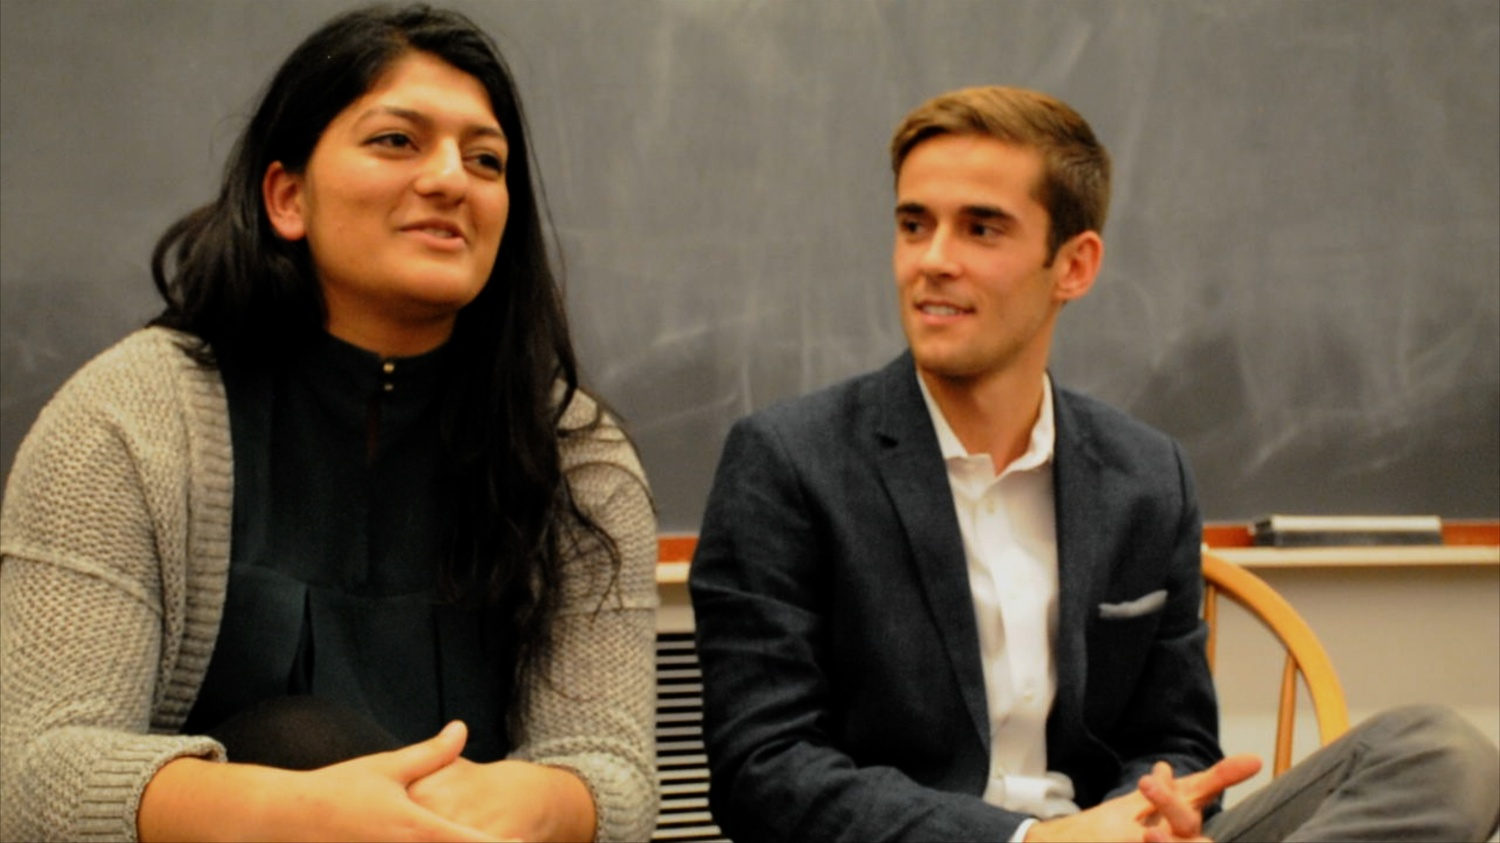 UC President Shaiba Rather '17 and UC Vice President Daniel V. Banks '17 wrote in an email to undergraduates that they supported the College's vision